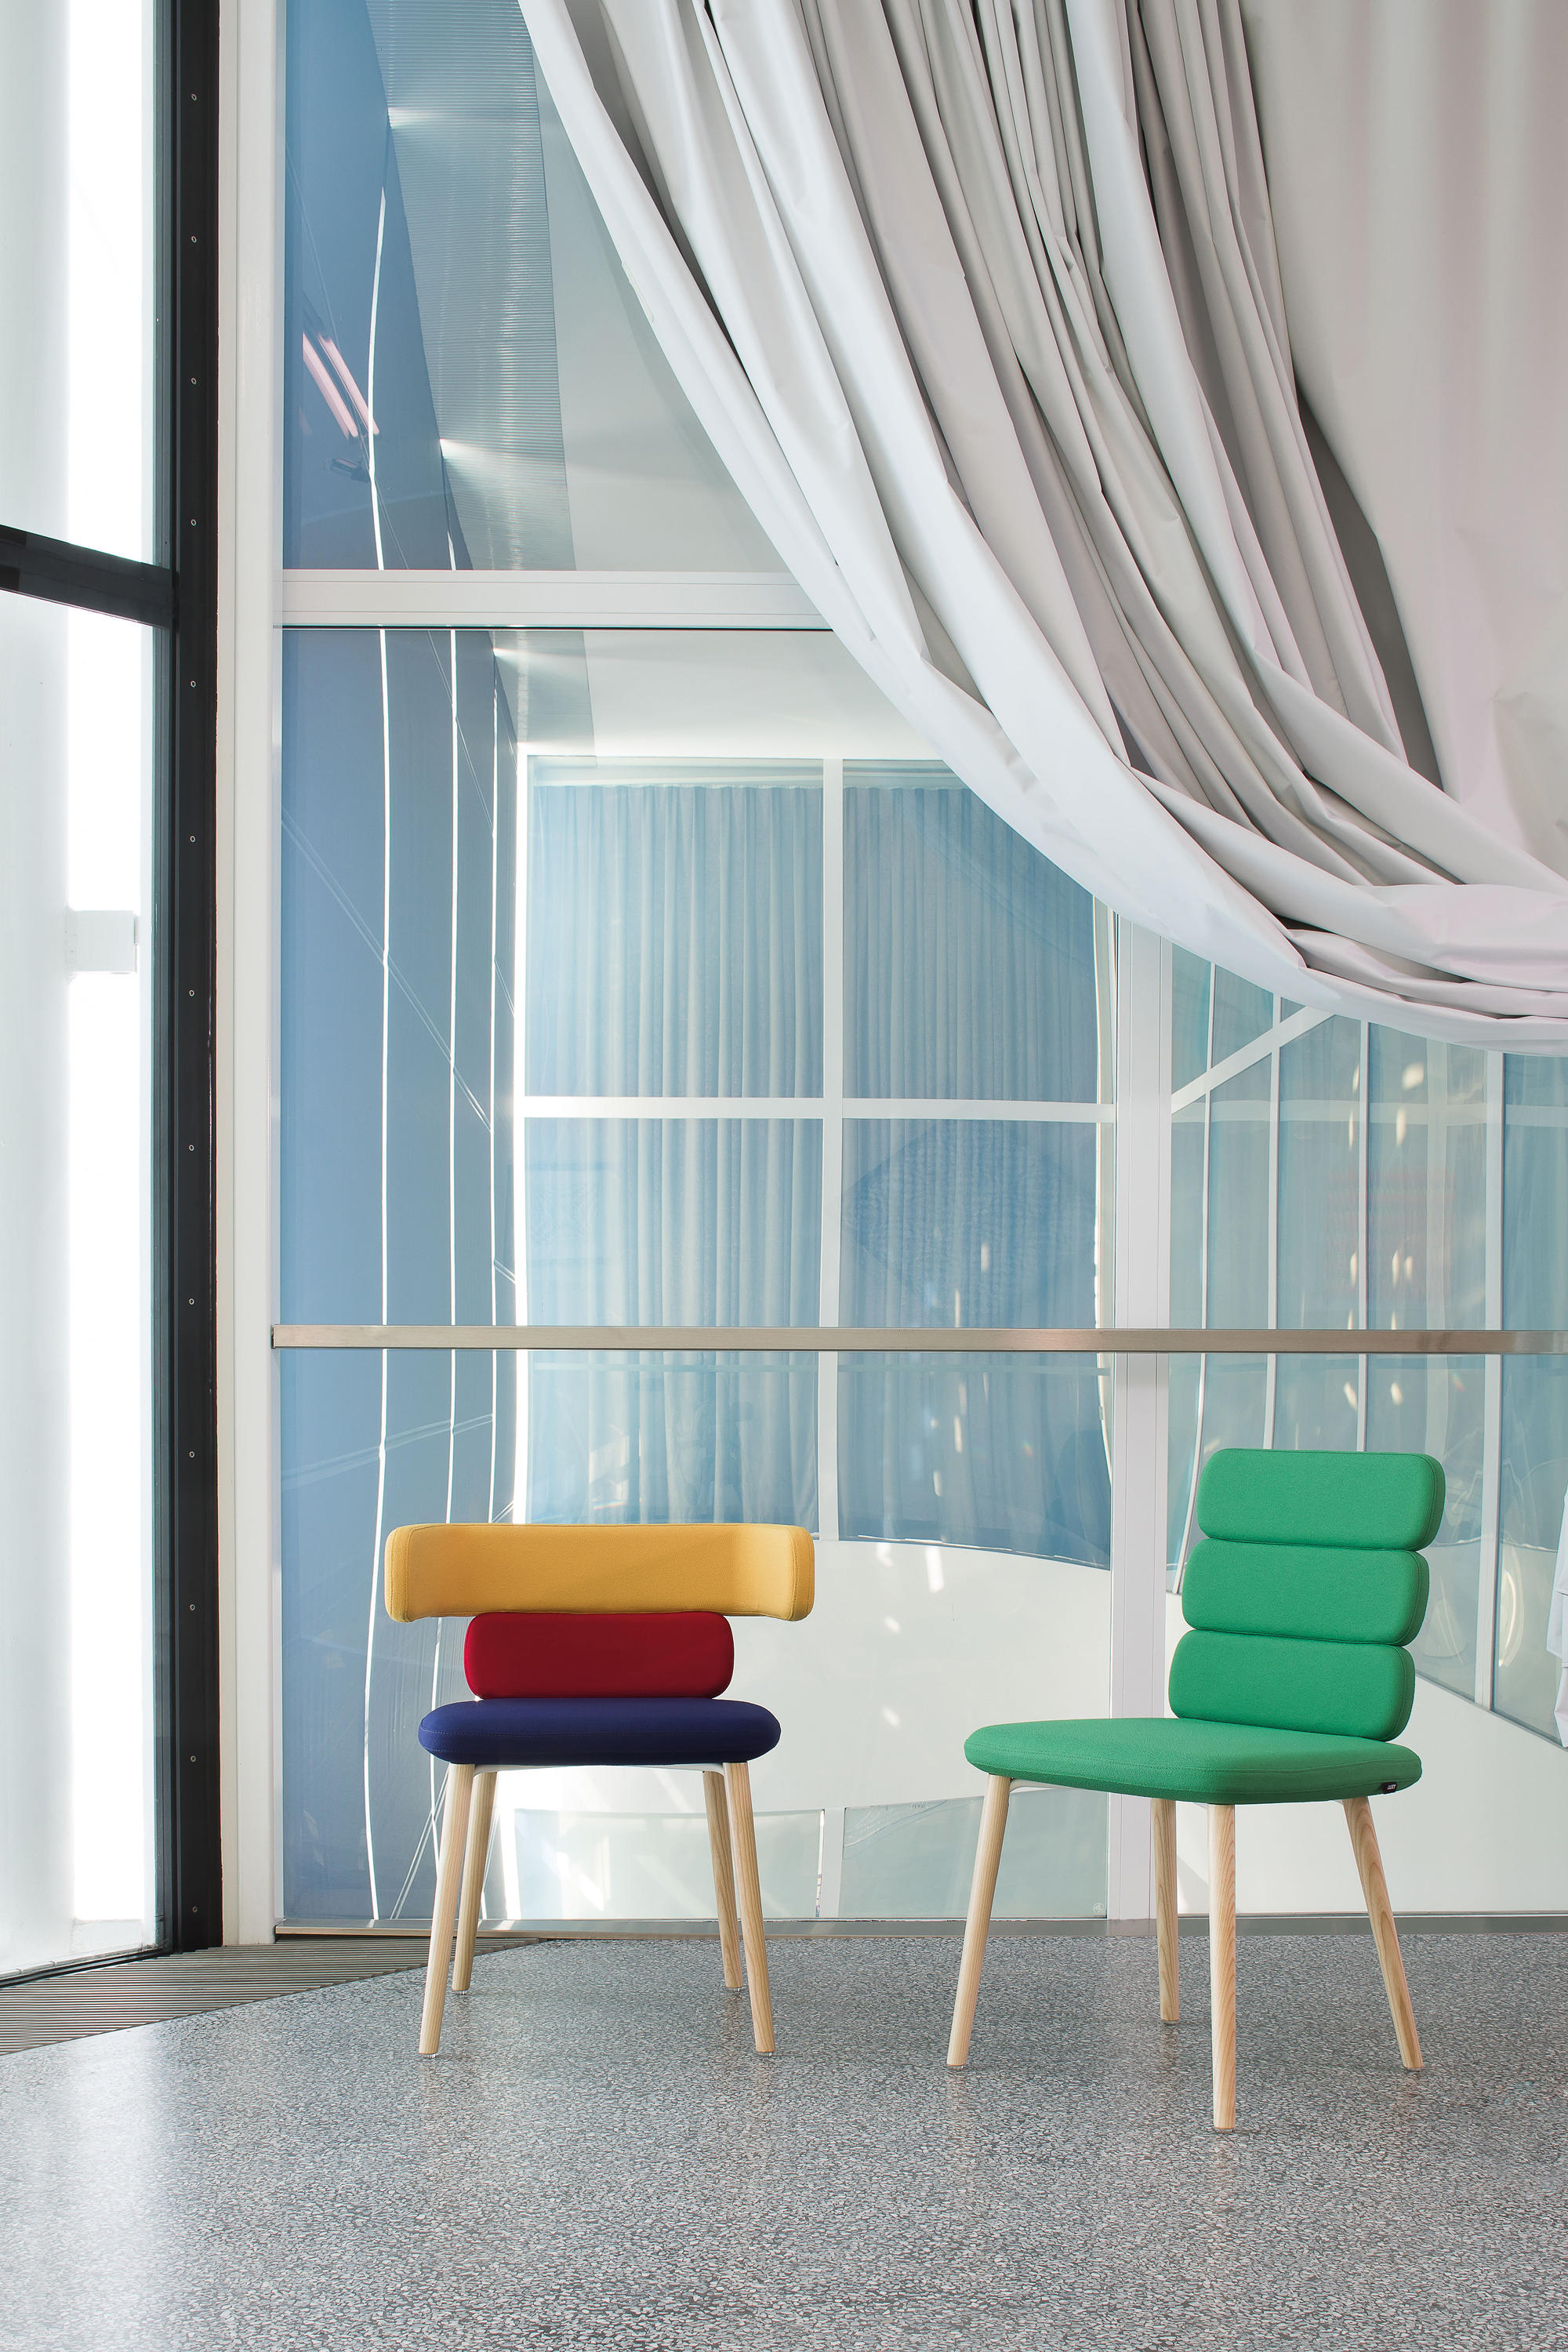 Cluster Chairs by Luigi Vittorio Cittadini for Luxy